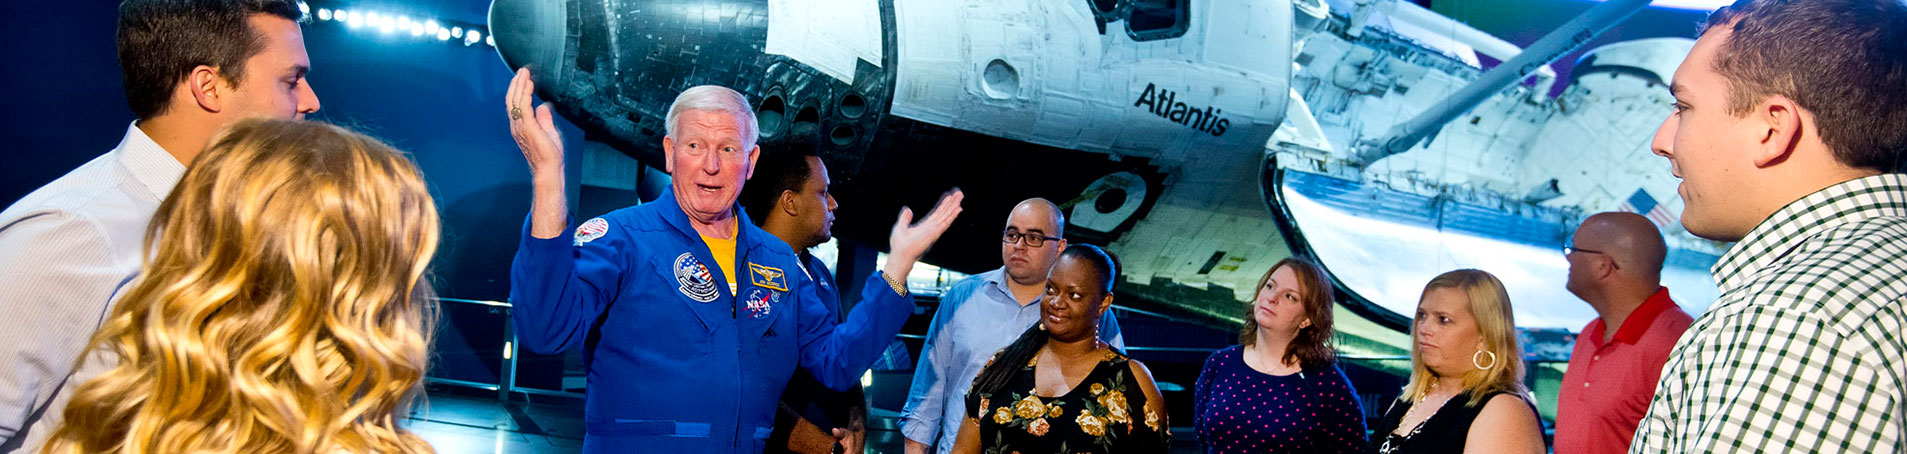 Include a unique experiences in your corporate event, such as a private tour with an astronaut.